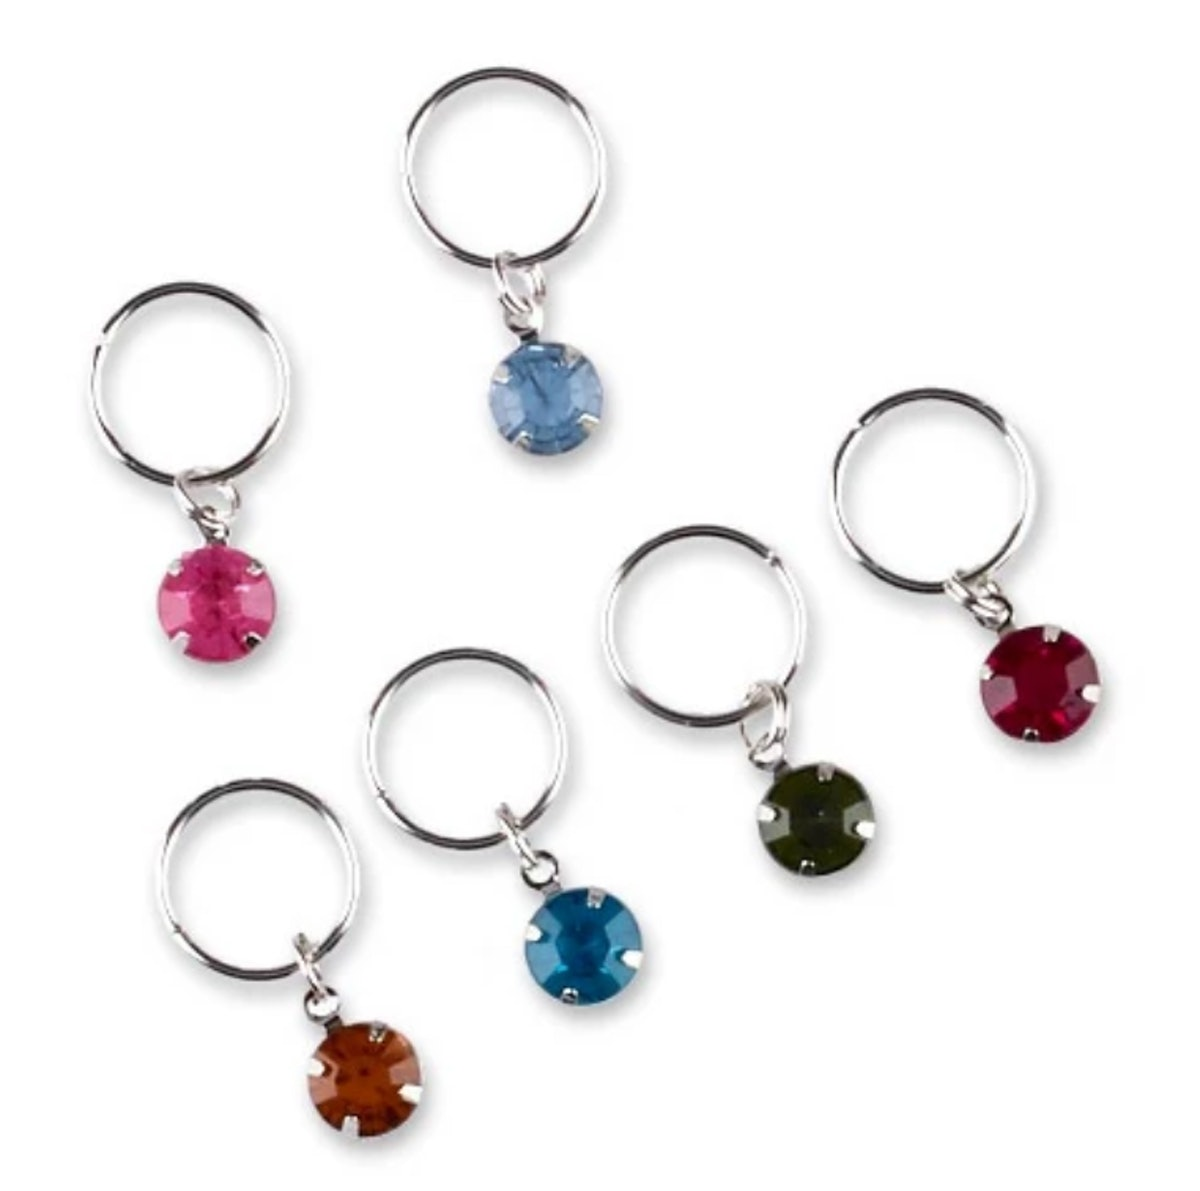 Sincerely Jules by Scunci Galaxy Hair Rings with Stones